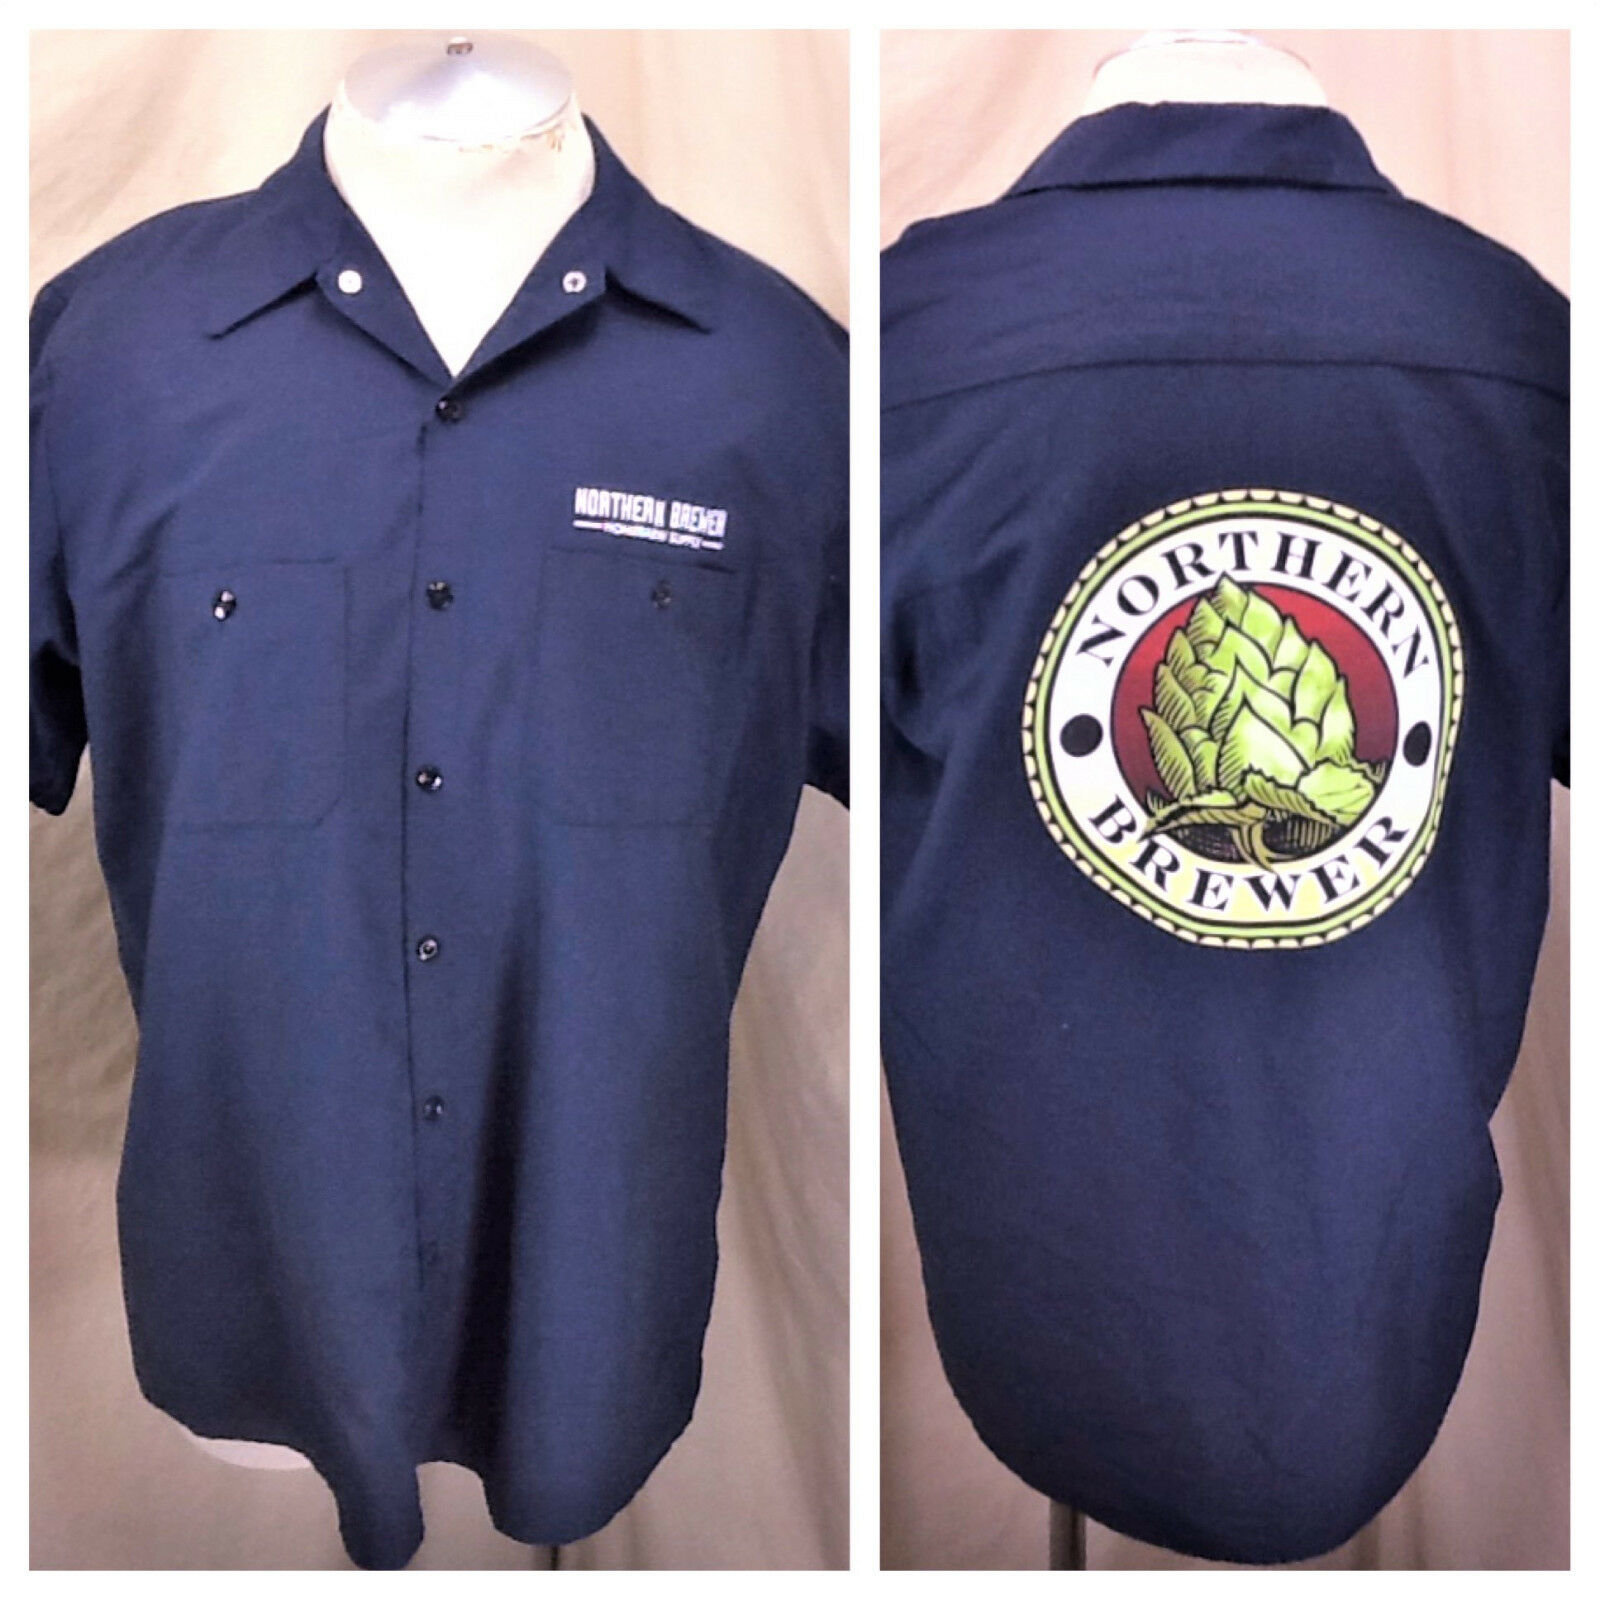 s l1600 Red Kap Northern Brewer Home Brew Supply (Large) Button Up Breweriana Shirt Blue